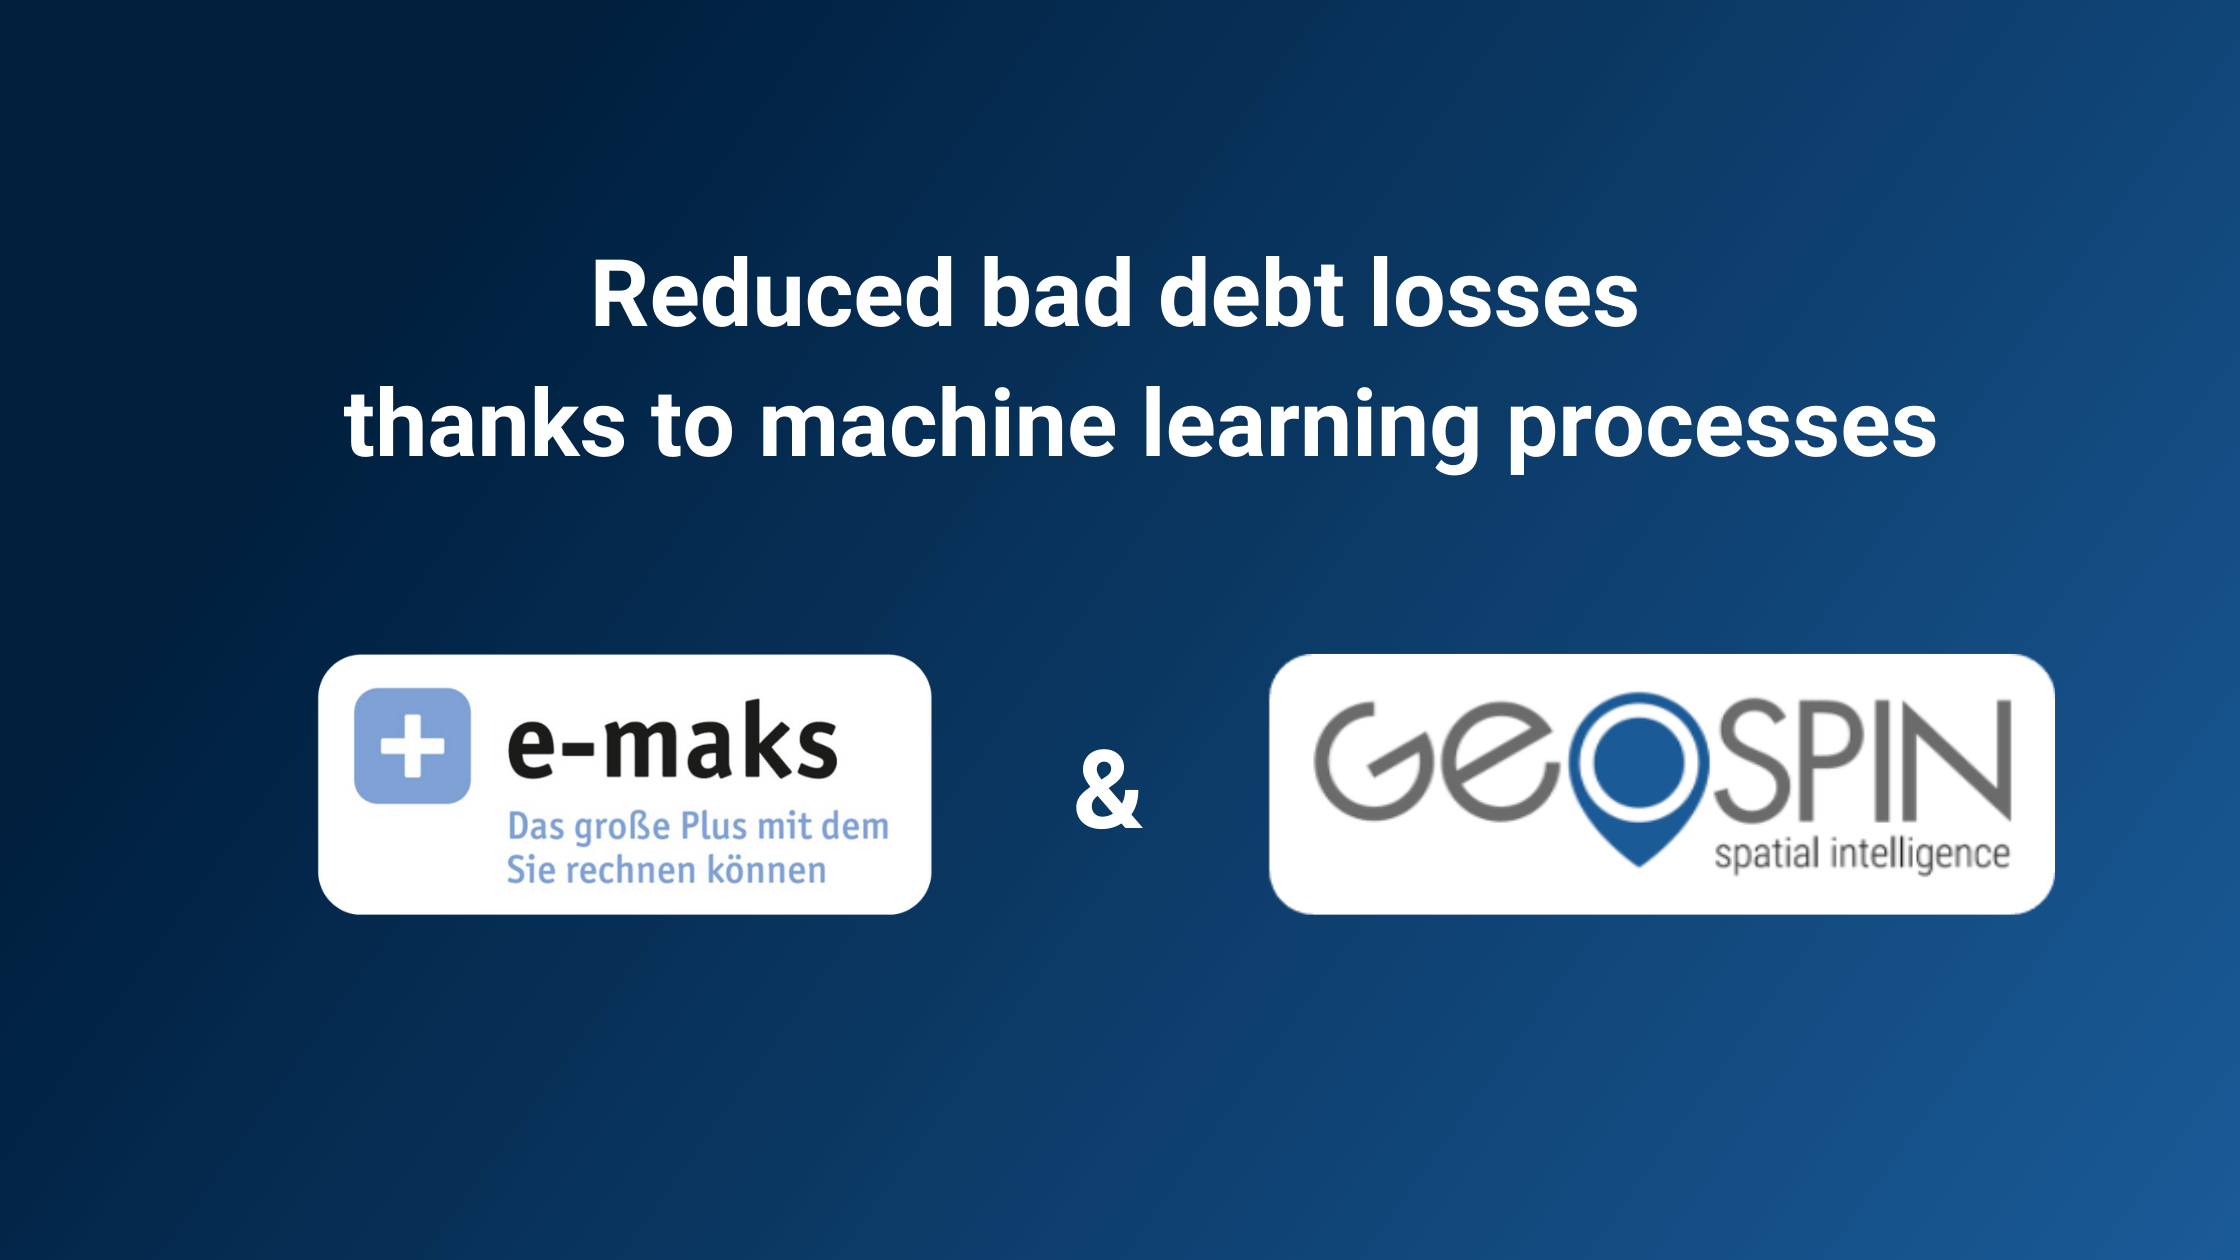 Reduced bad debt losses thanks to machine learning processes